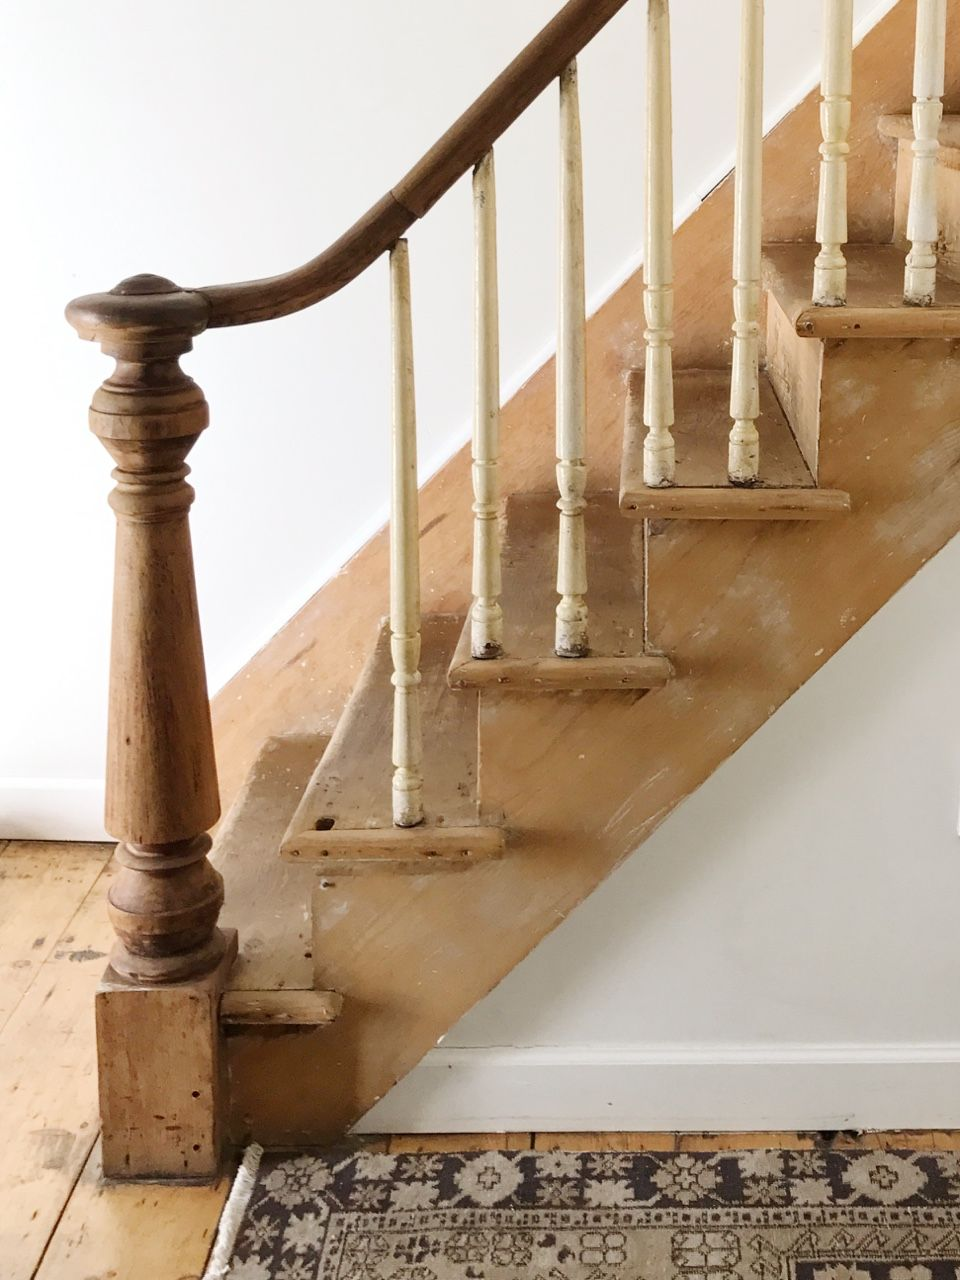 Pin by shannon bowman on Stairs (With images) Banister